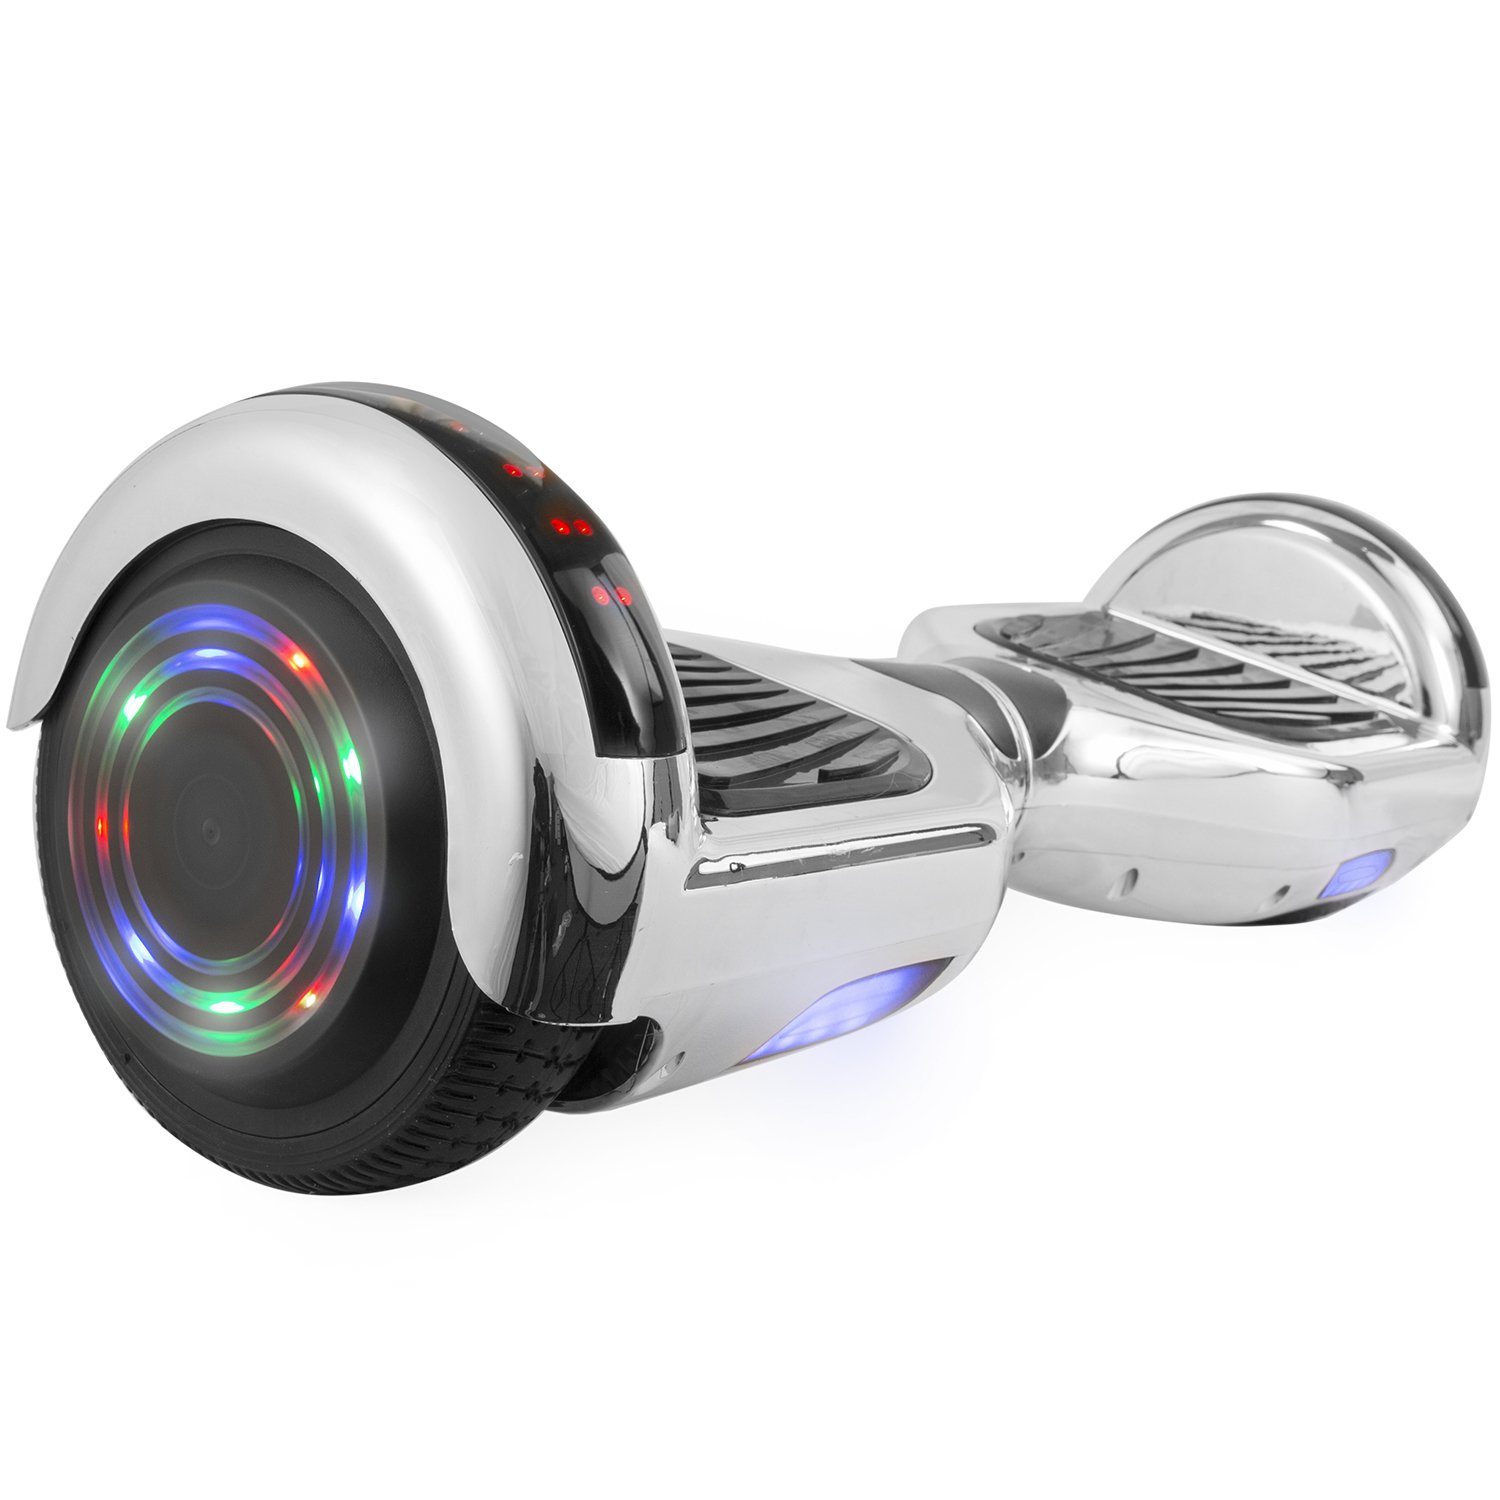 levit8ion ION 6.5'' Hoverboard -Self Balancing Scooter 2 Wheel Electric Scooter - UL Certified 2272 With Bluetooth, LED Wheels And LED Lights (Chrome Silver) by levit8ion